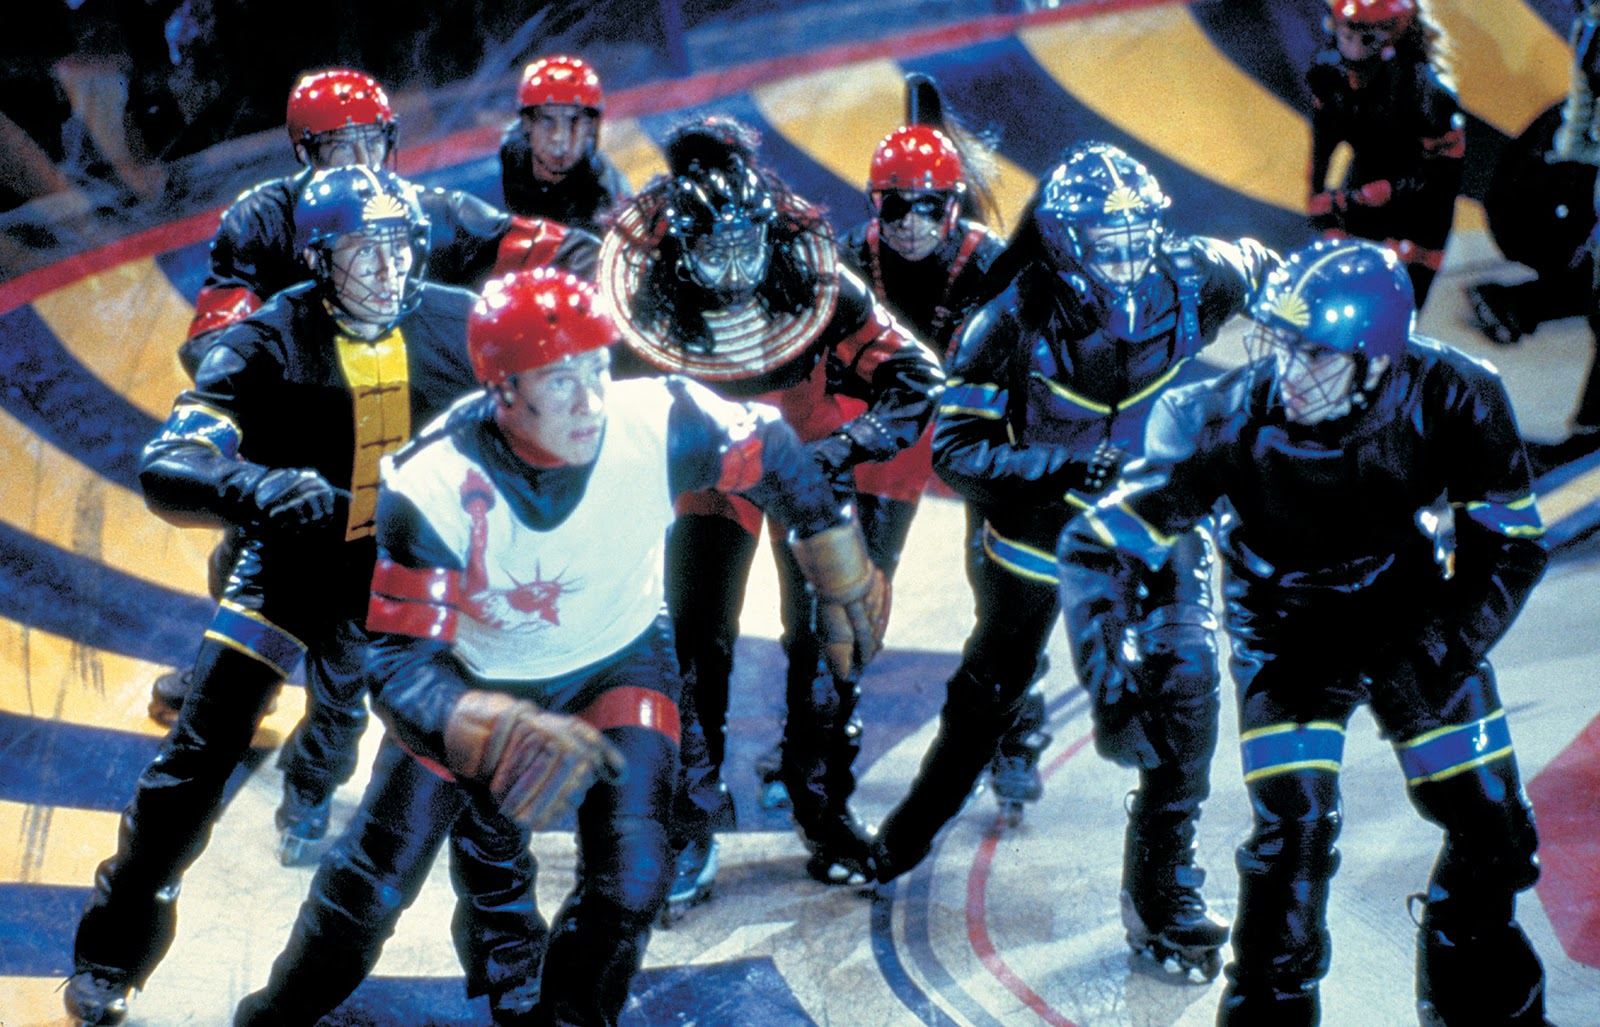 The Rollerball game in Rollerball (2002)